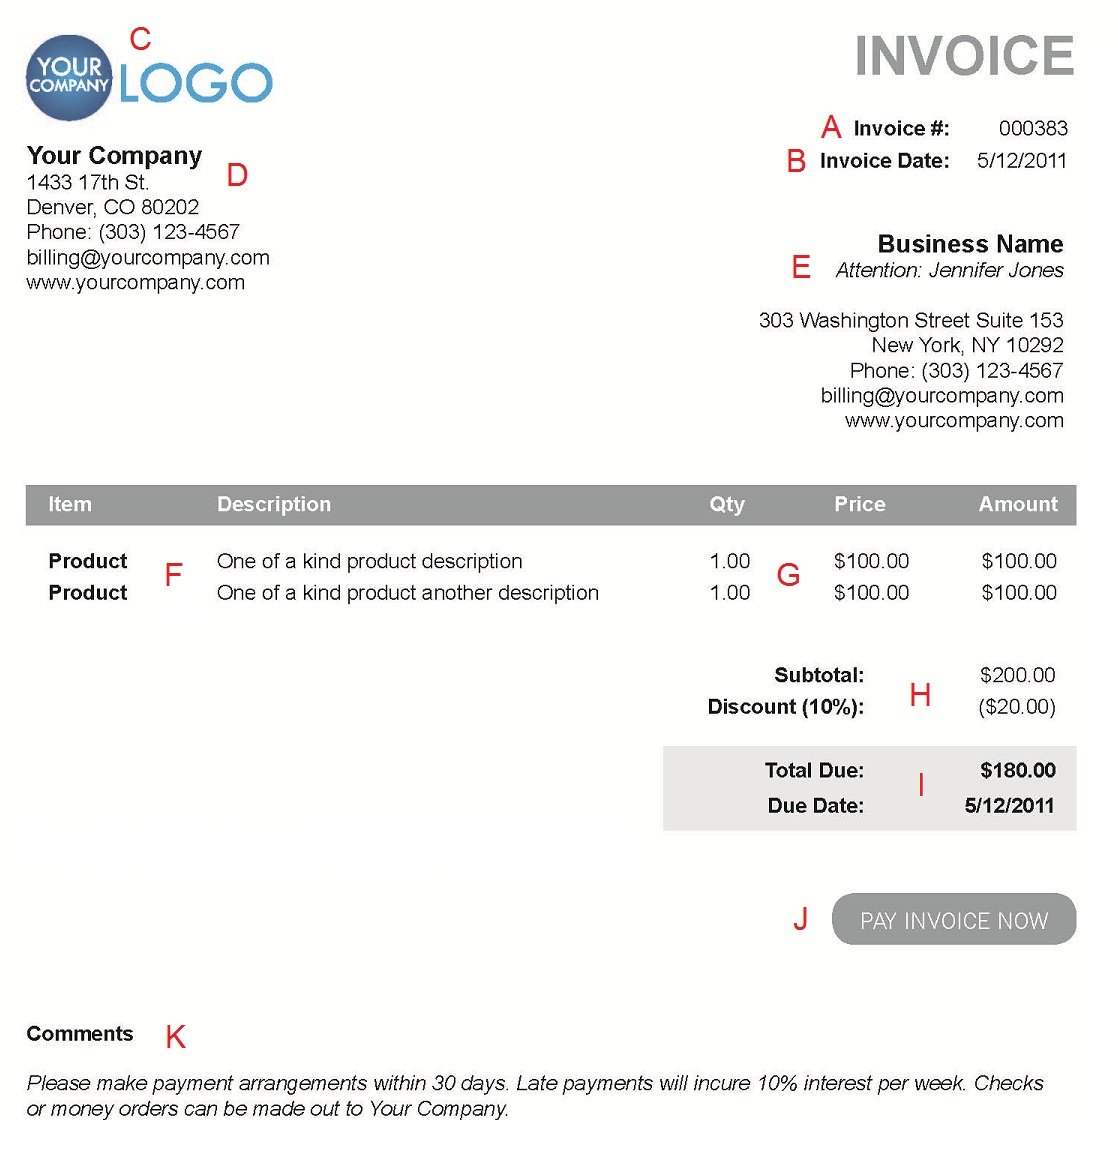 Opposenewapstandardsus  Winning The  Different Sections Of An Electronic Payment Invoice With Handsome A  With Astounding Invoice Templates For Free Also Dictionary Invoice In Addition Cif Invoice And Invoice Template Open Office Free As Well As Invoice Pages Template Additionally Invoice Database Software From Paysimplecom With Opposenewapstandardsus  Handsome The  Different Sections Of An Electronic Payment Invoice With Astounding A  And Winning Invoice Templates For Free Also Dictionary Invoice In Addition Cif Invoice From Paysimplecom